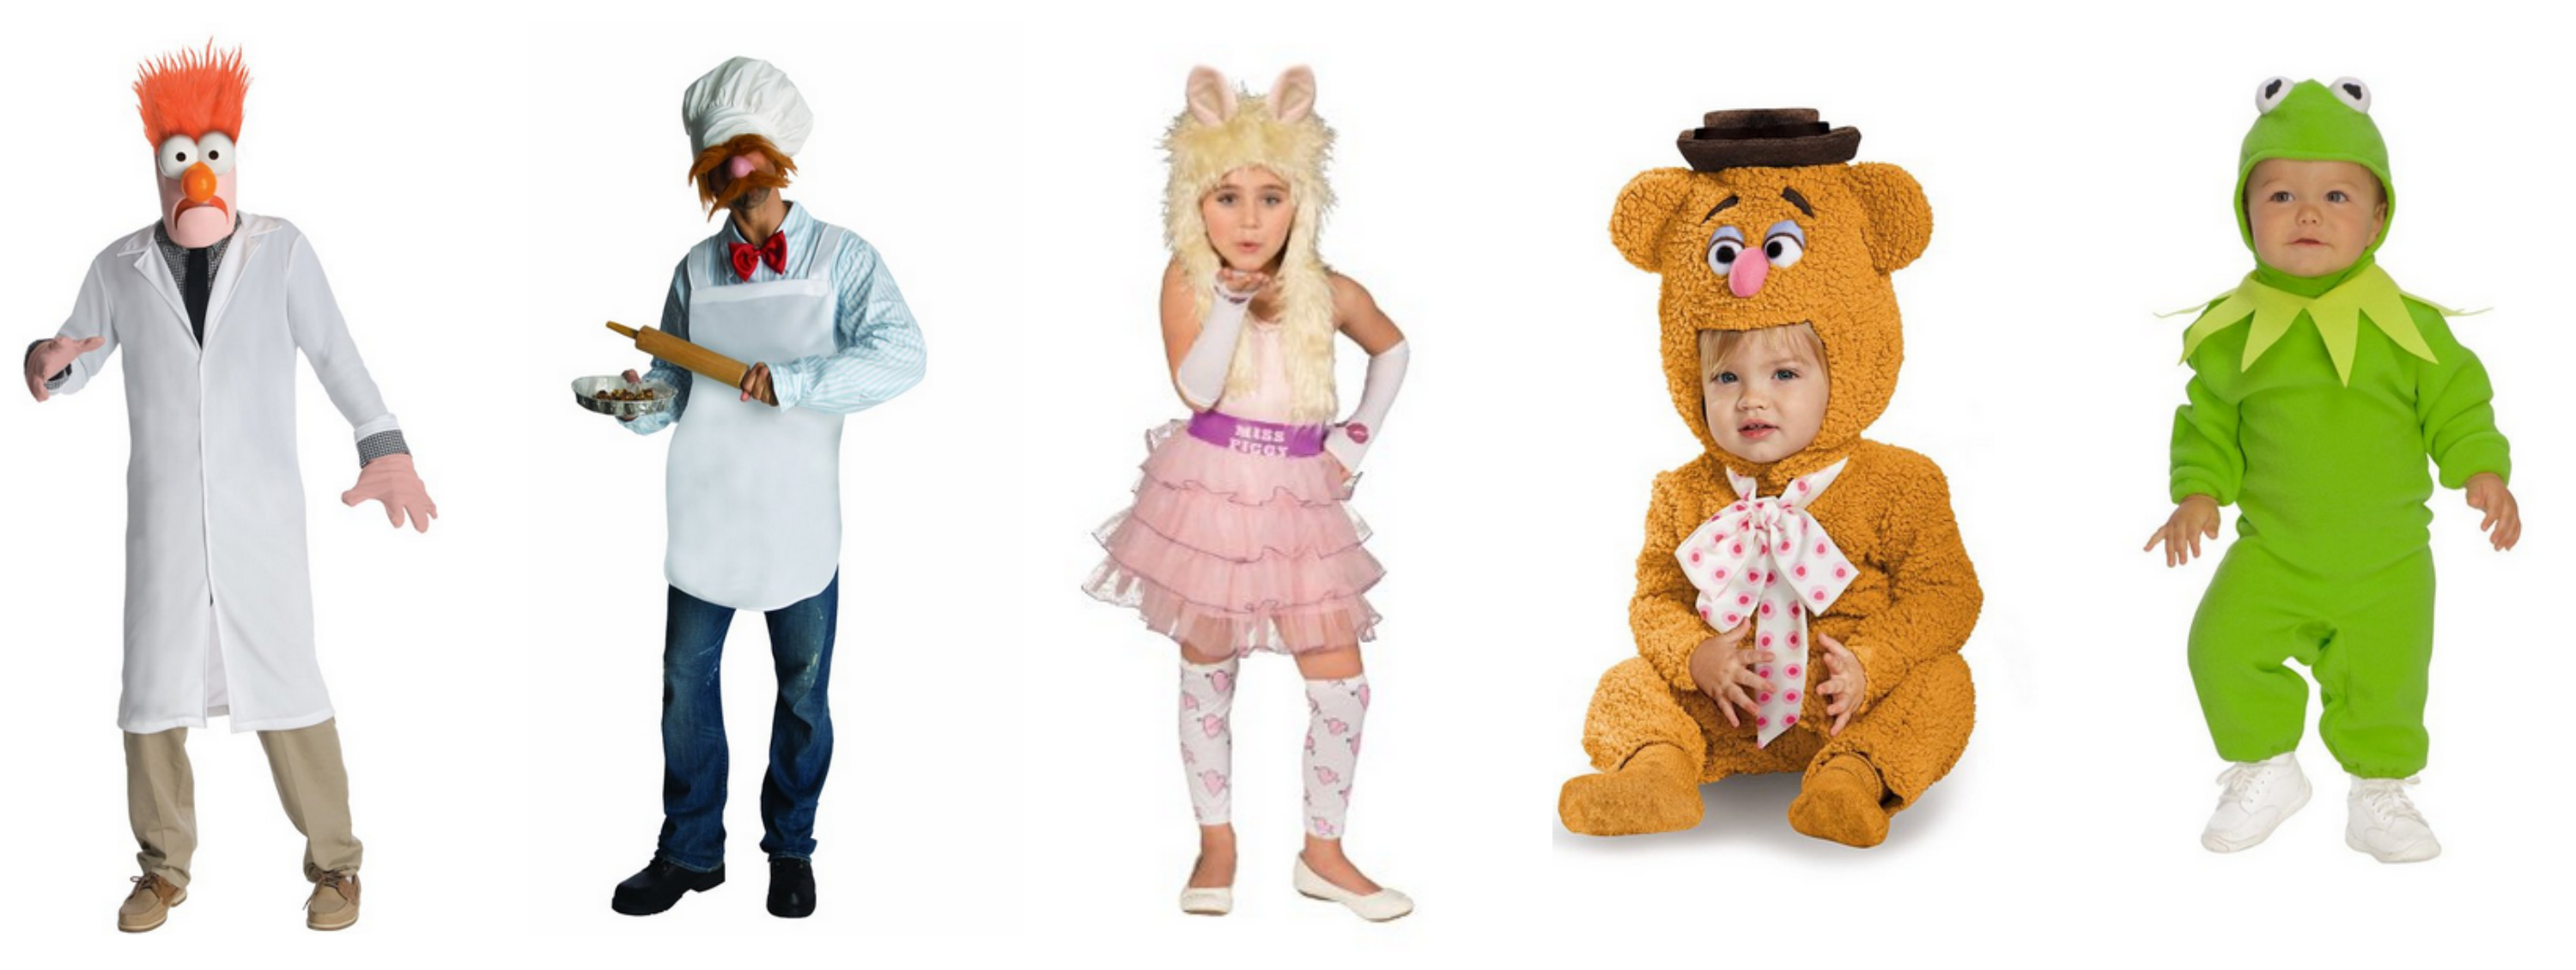 The Muppets Family Halloween Costume Idea